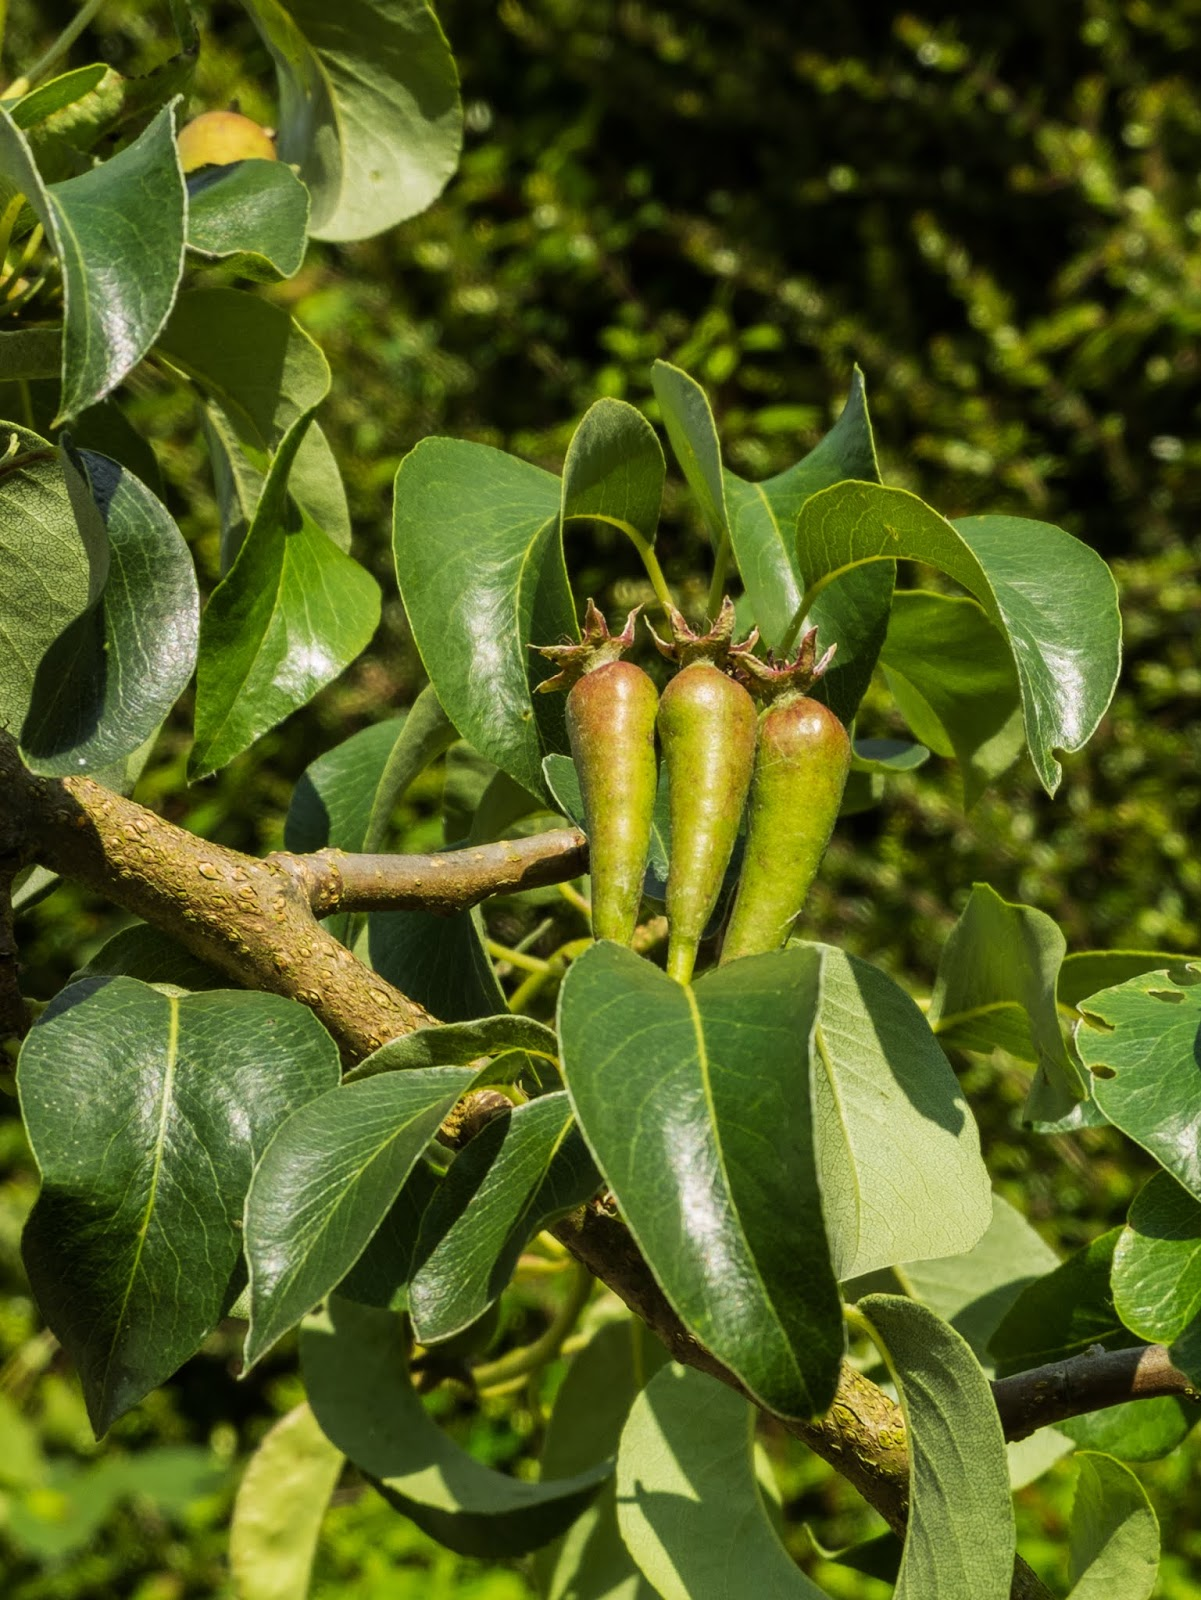 A close up of three pears growing upwards on the tree in the sunlight.